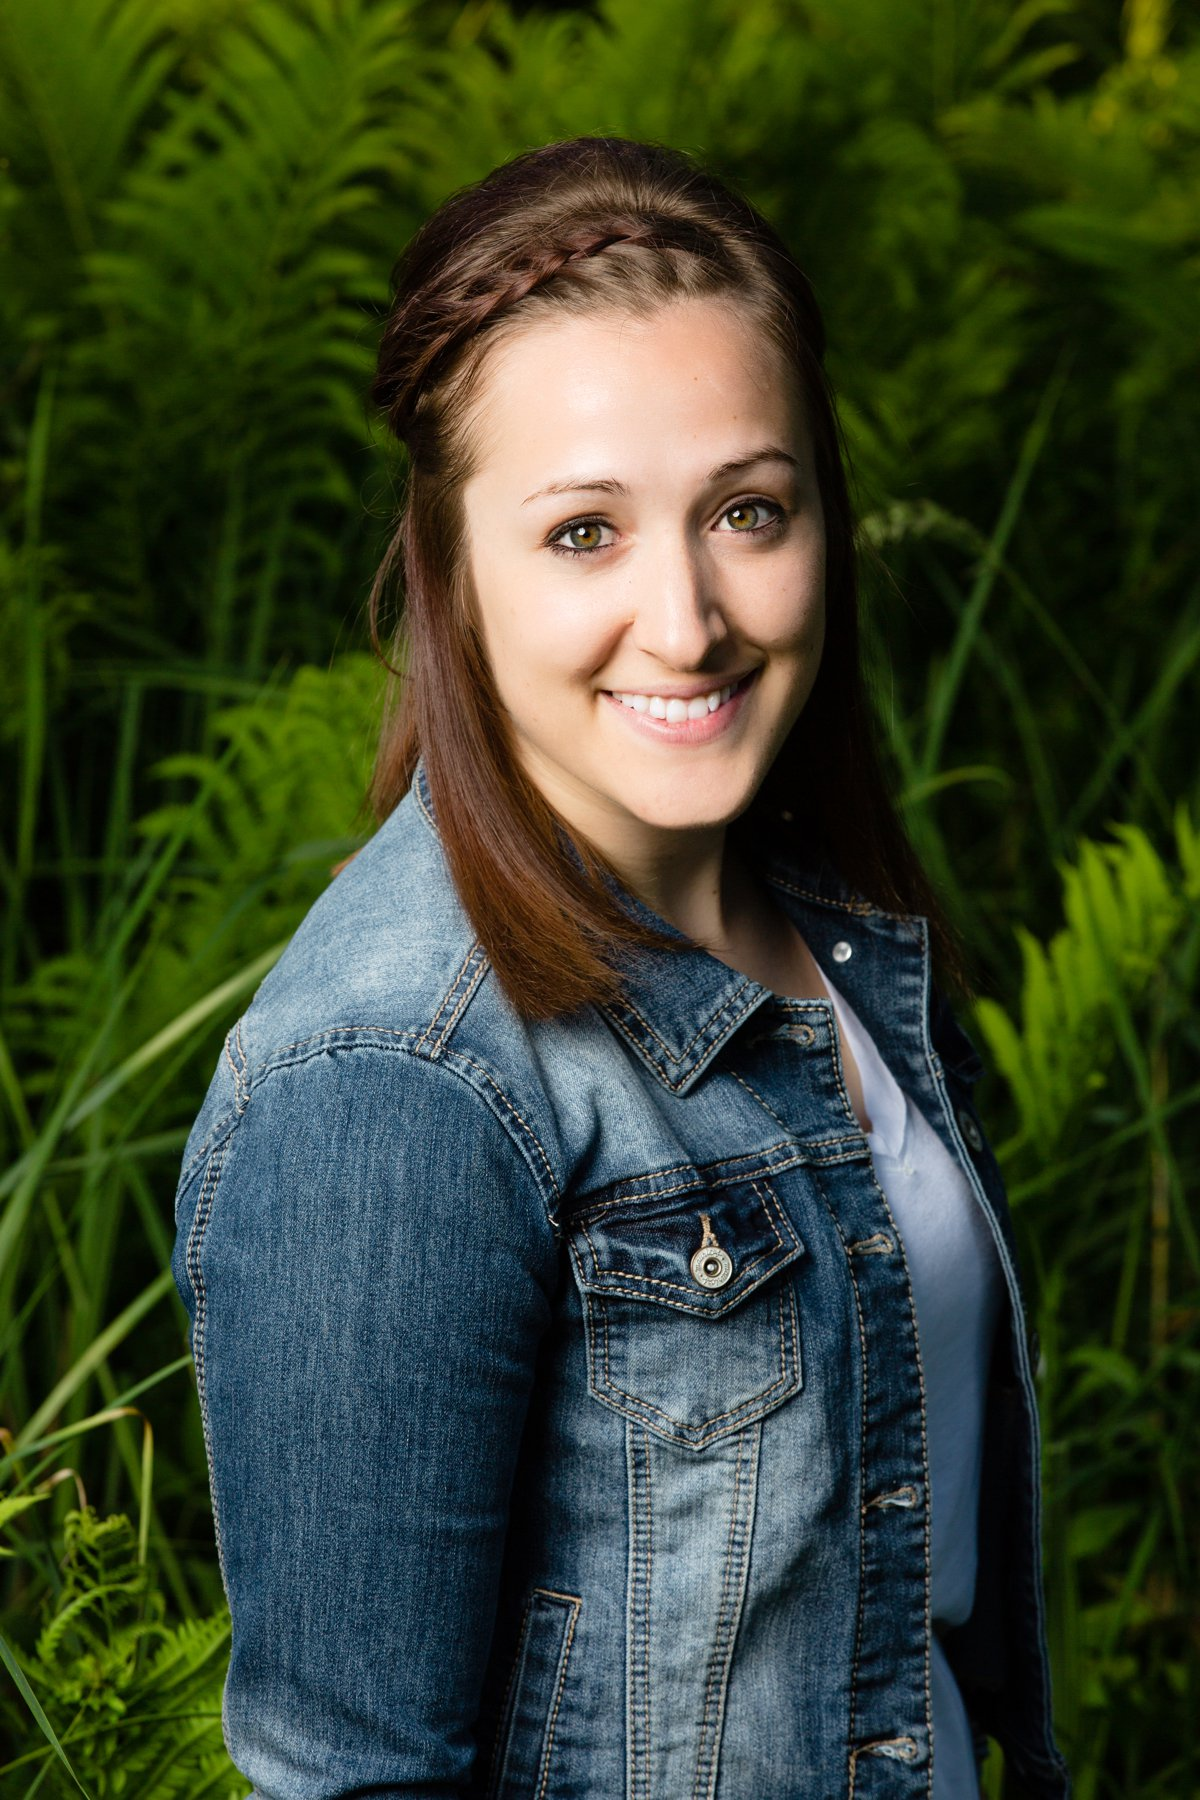 02-utopia-day-spa-commercial-portraits-photographer-medford-wi